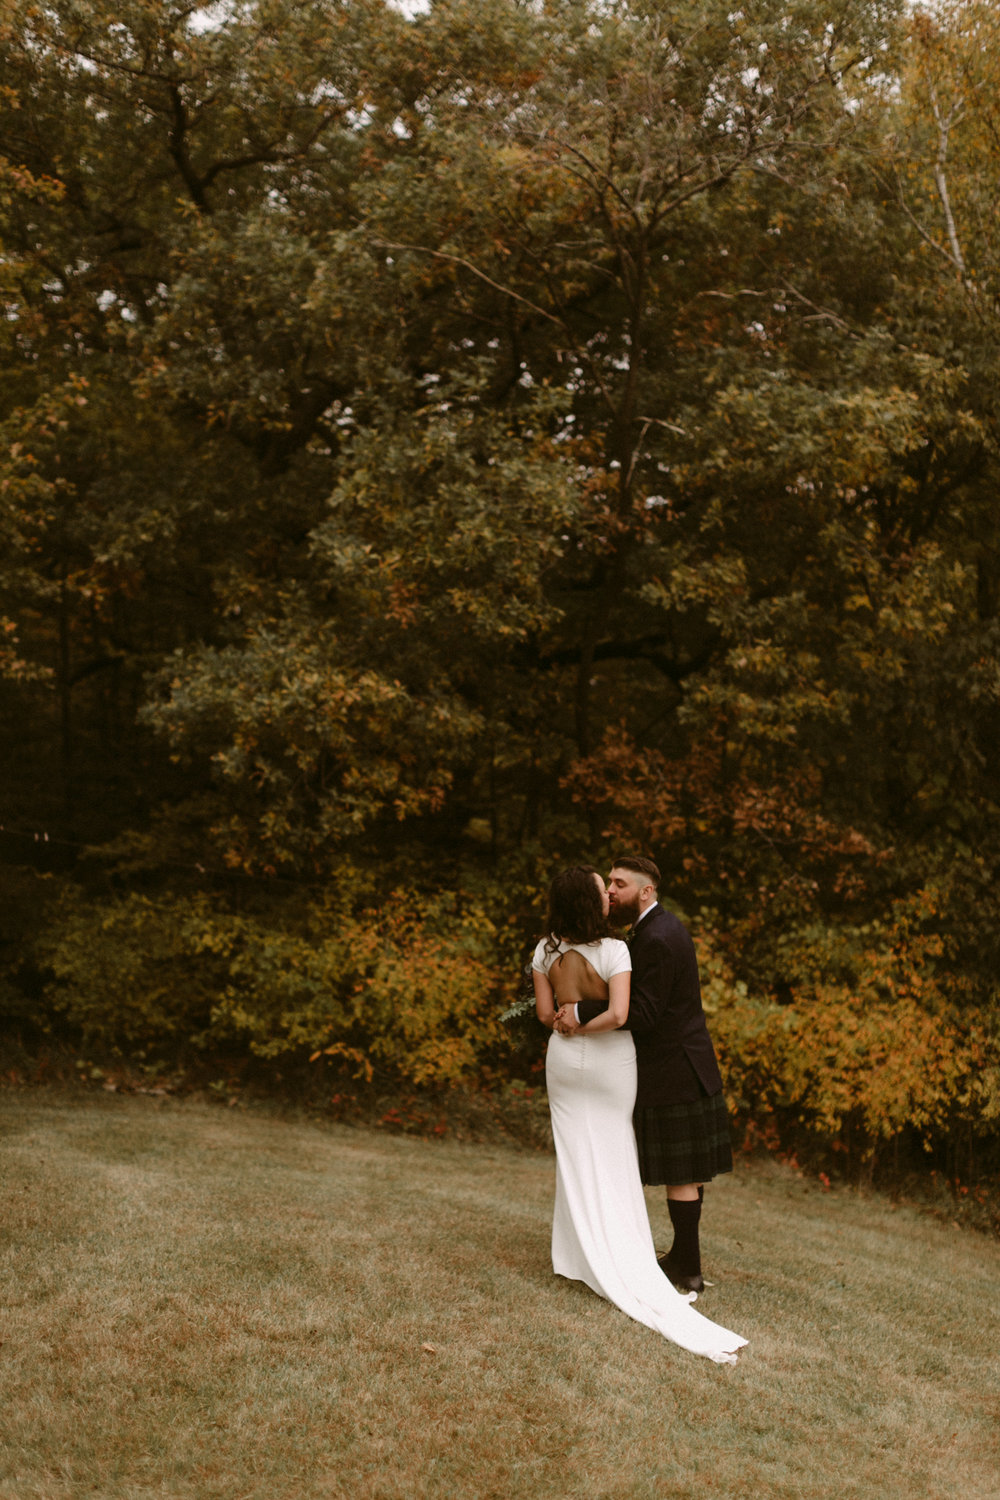 DalbrechtPhotography_EthanEmma_Wedding_Blog-40.jpg